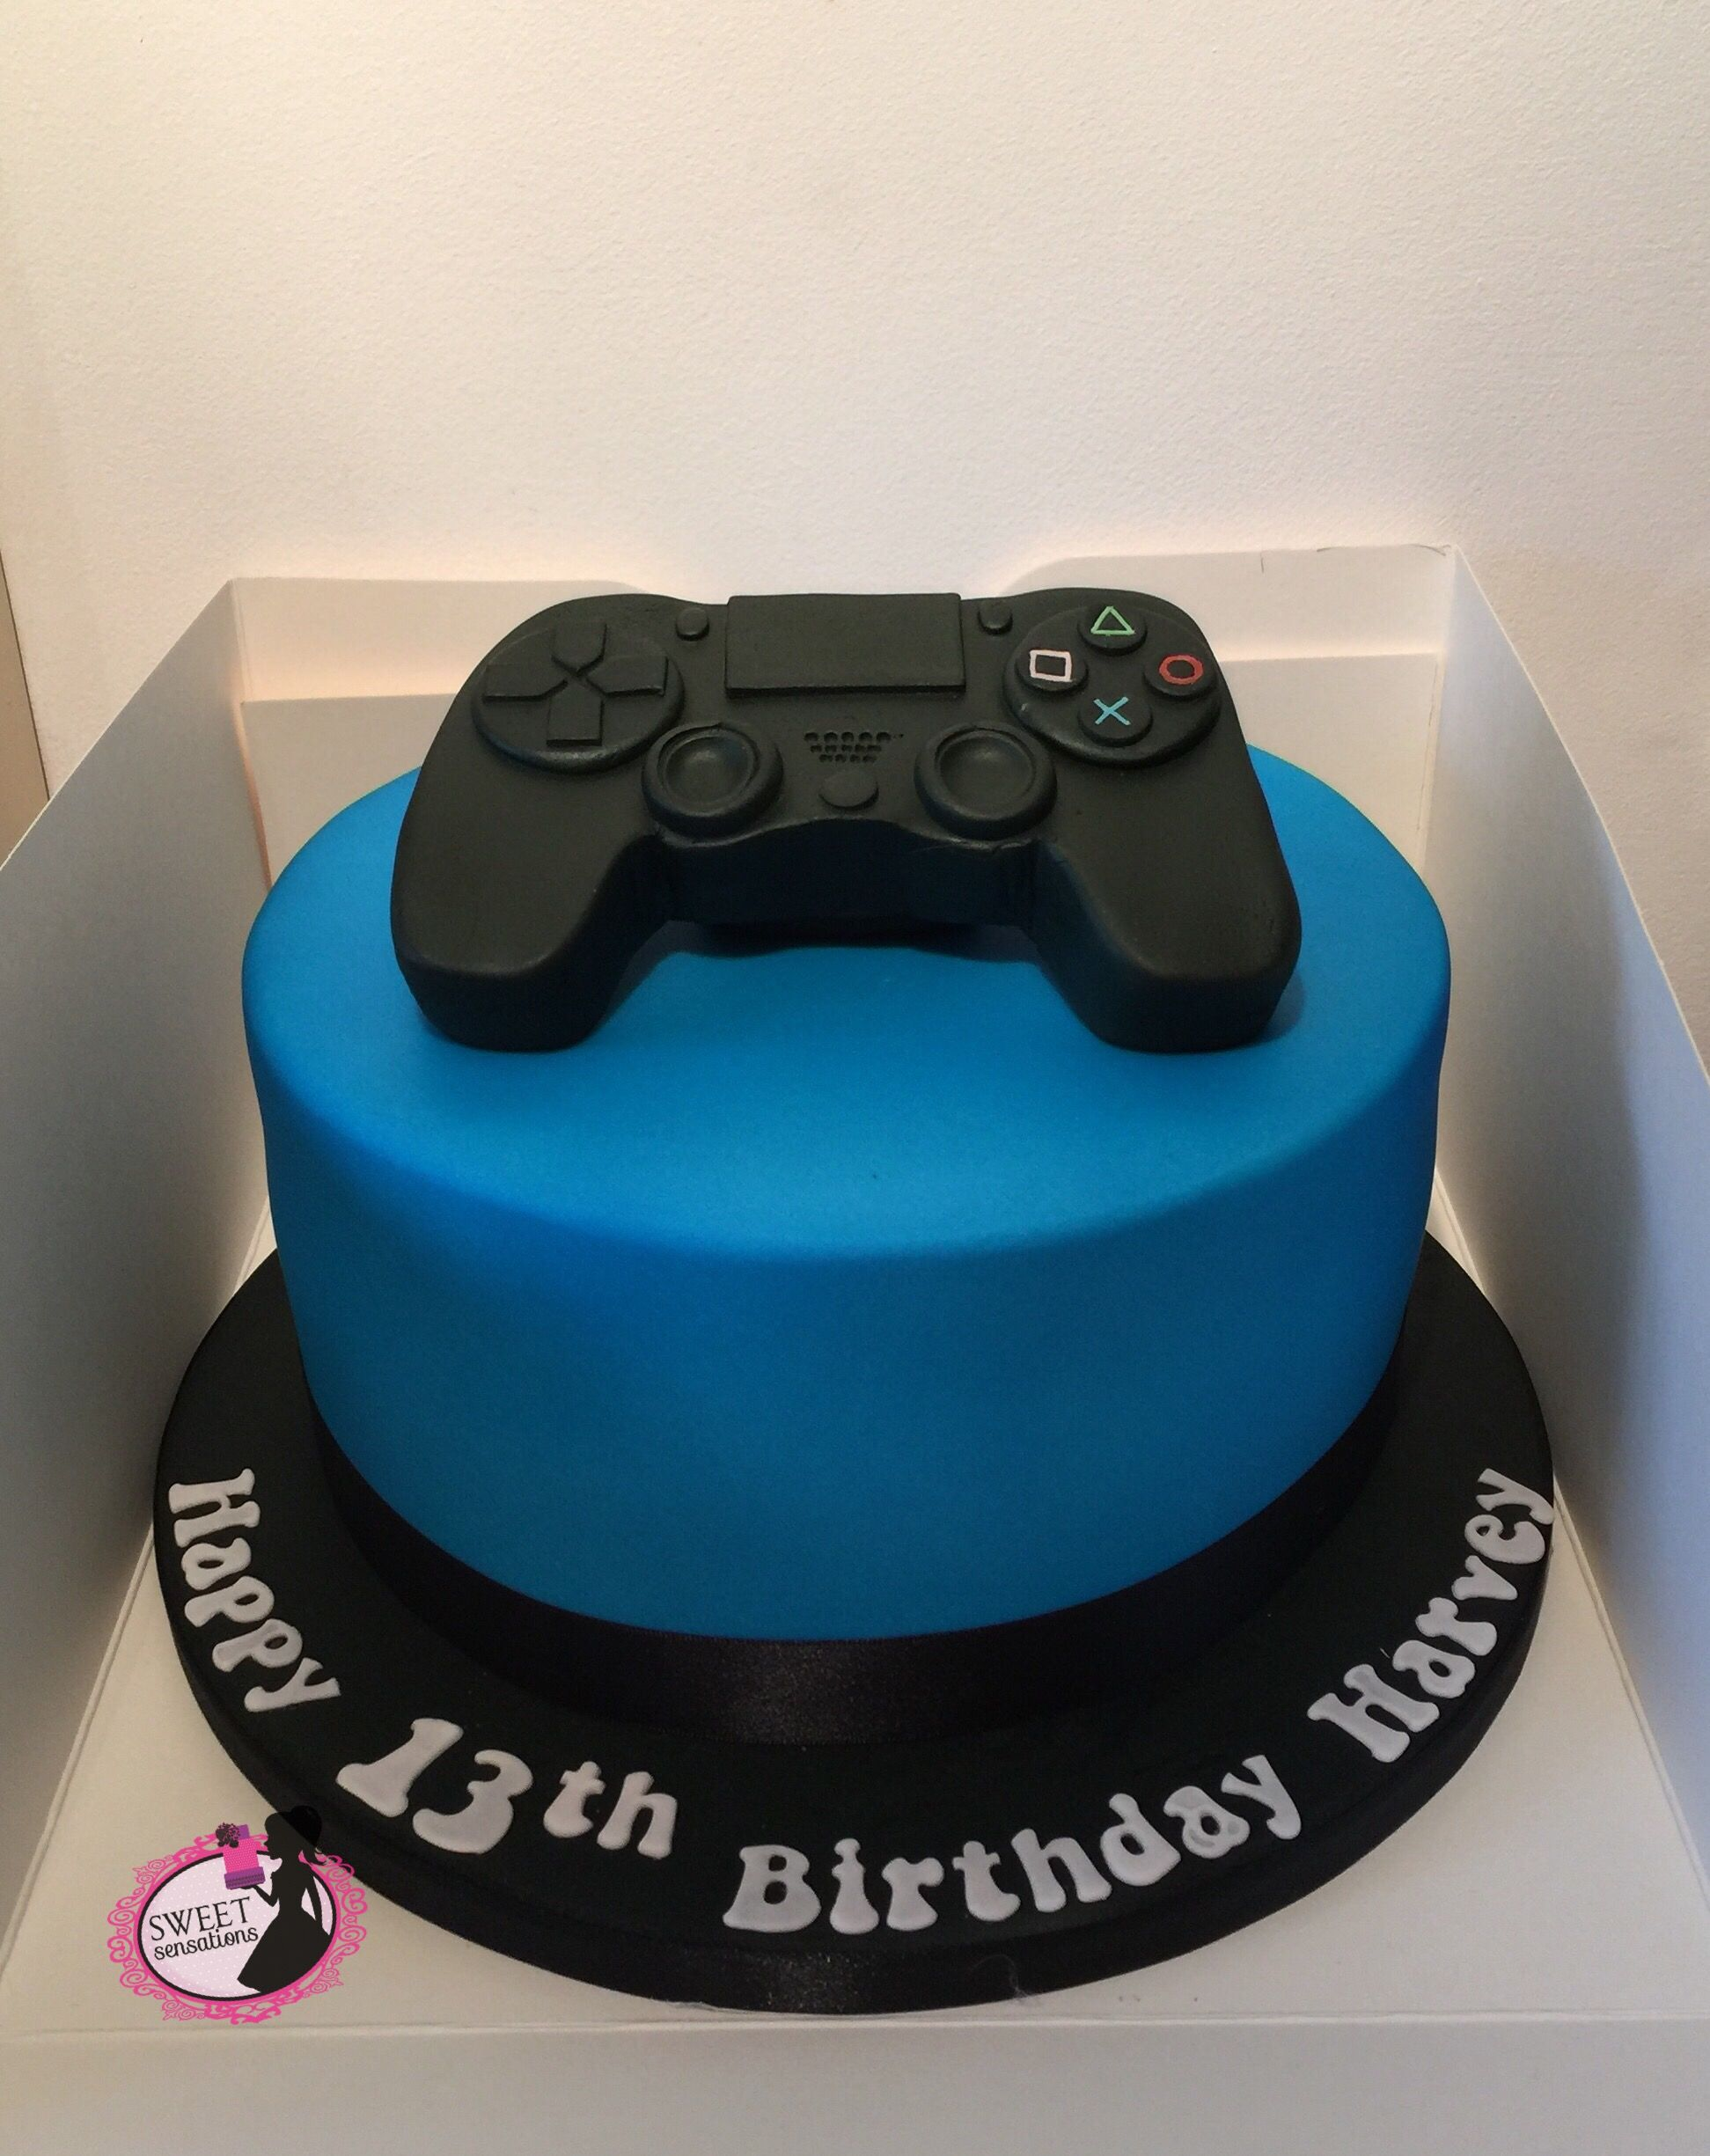 Sensational Ps4 Cake Cool Birthday Cakes New Birthday Cake Playstation Cake Personalised Birthday Cards Rectzonderlifede